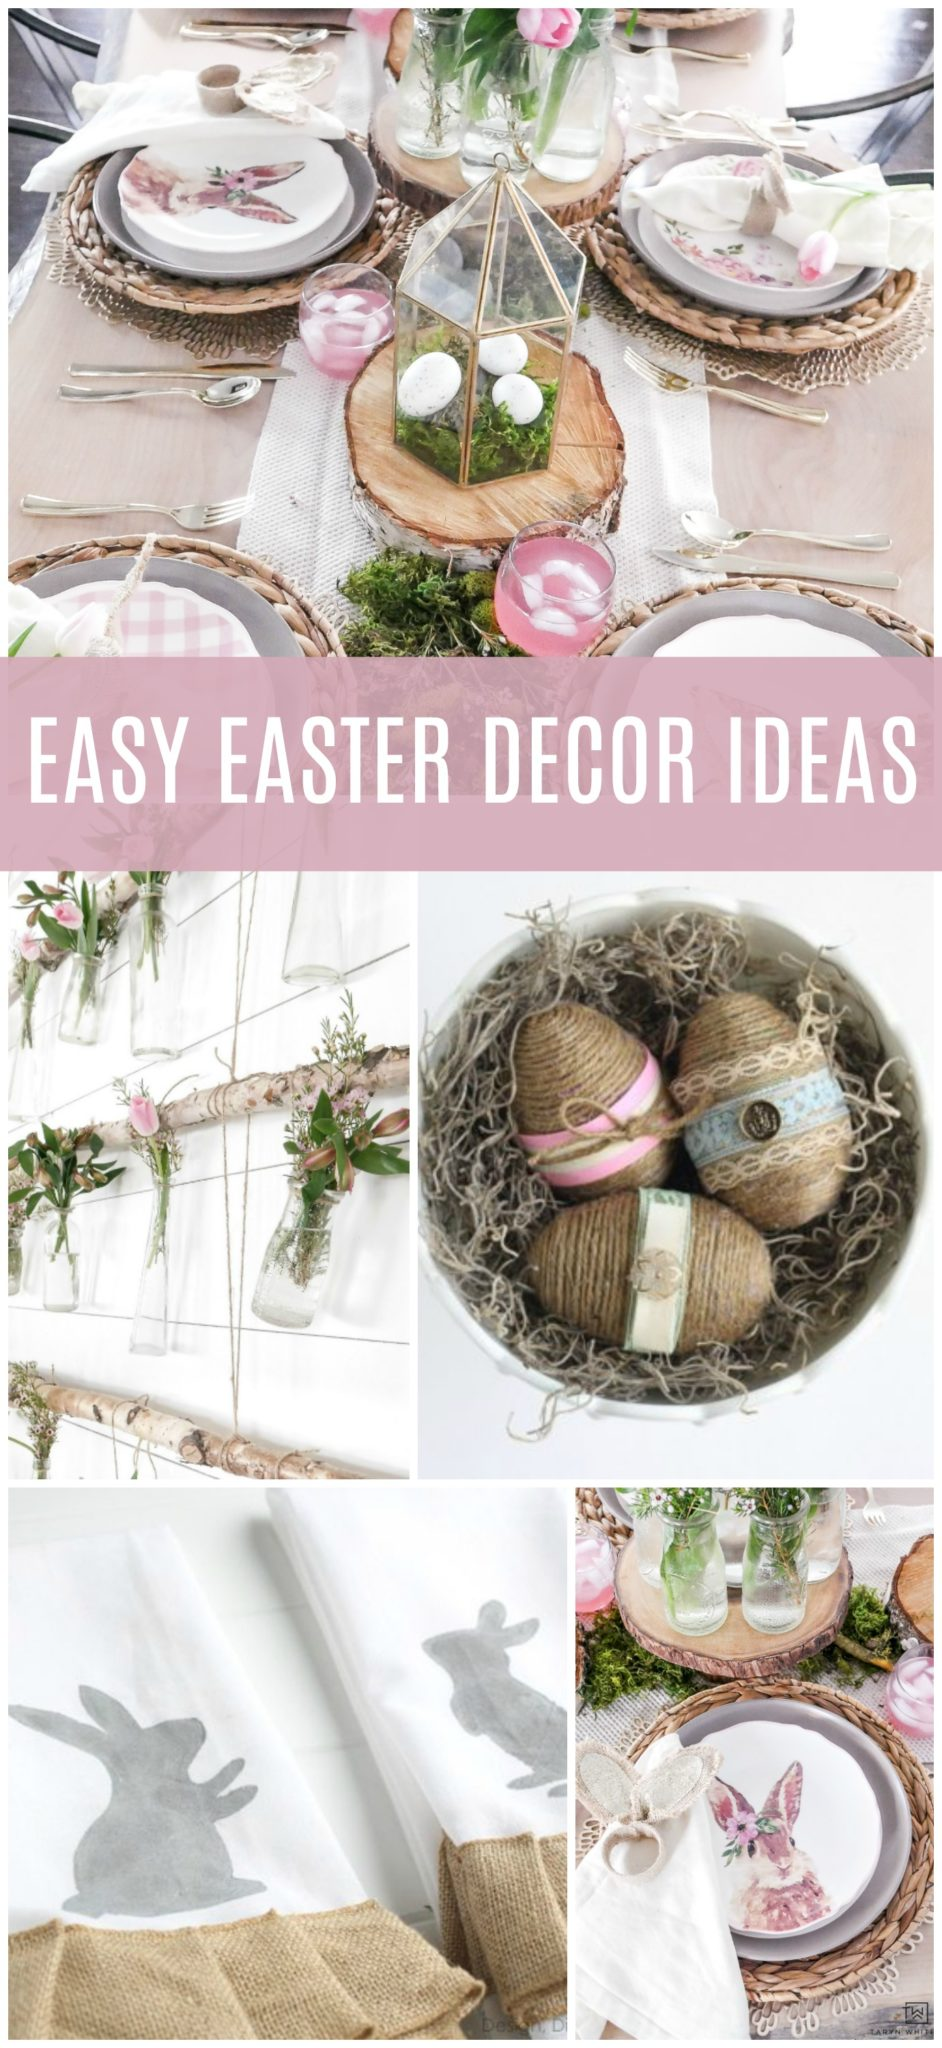 Struggling with how to decorate for Easter? Here are a few Easy DIY Easter Decor Ideas that can help you add a few little Easter touches for everyone to enjoy!